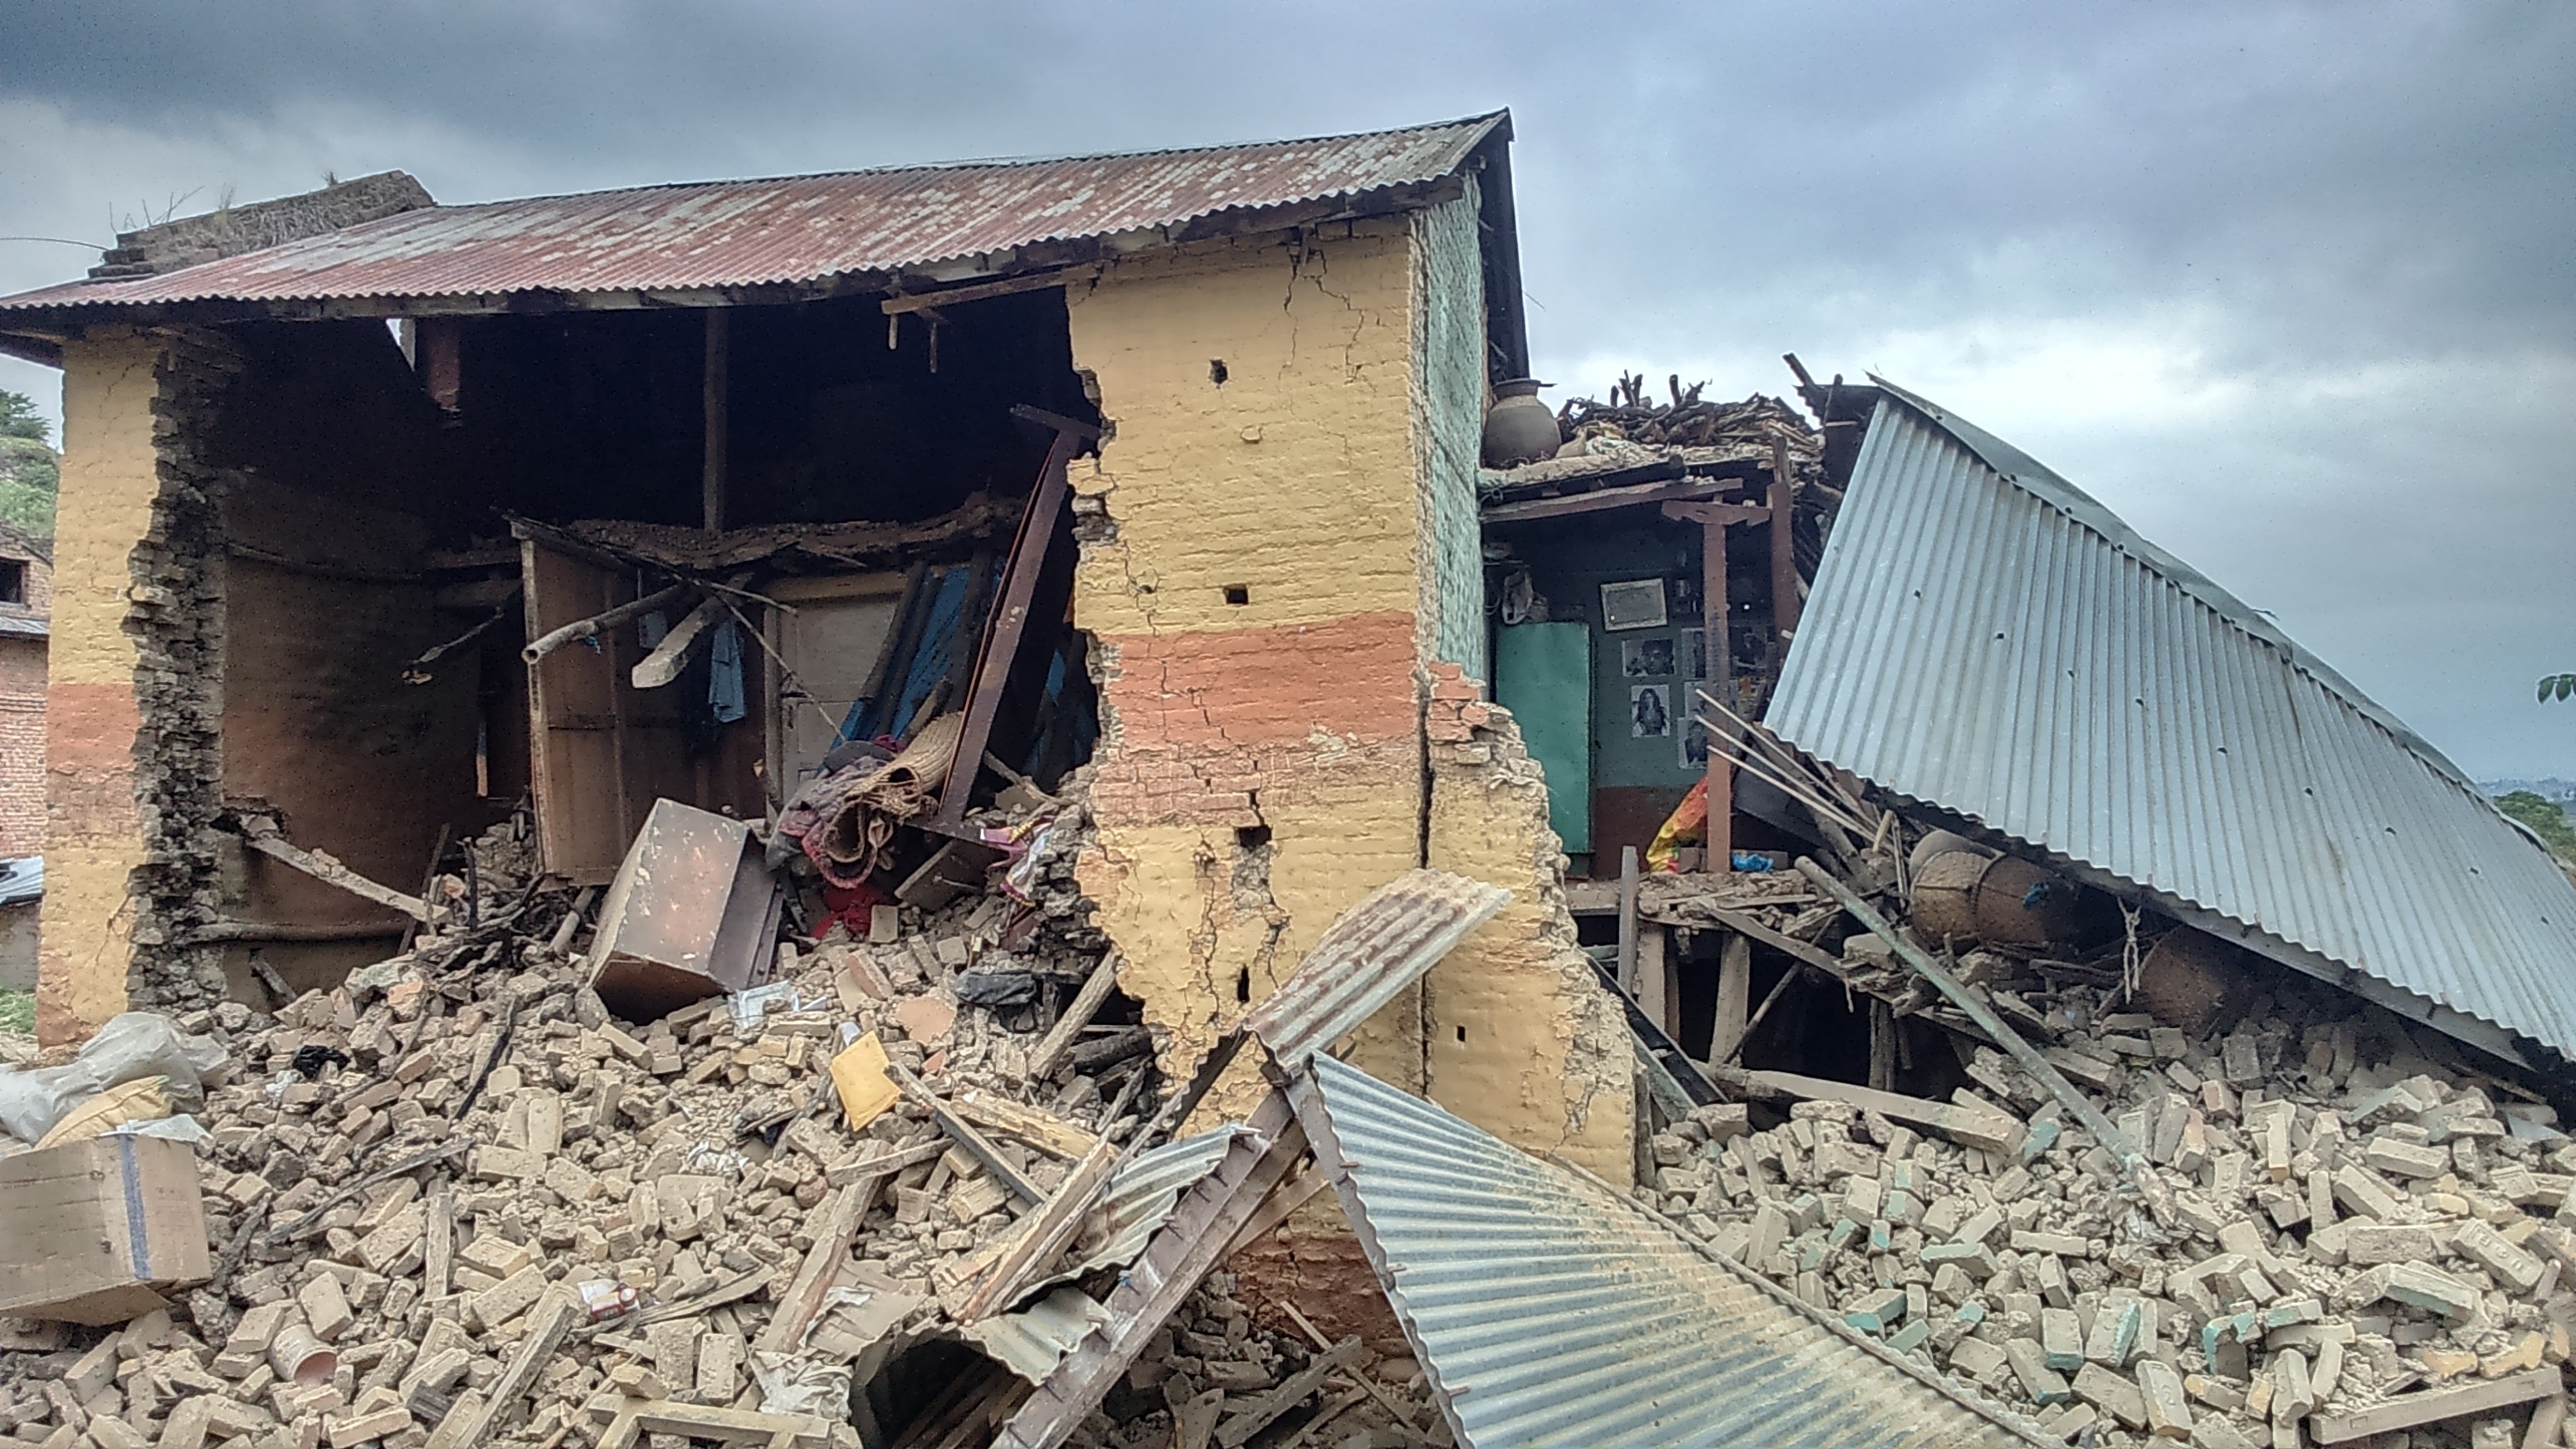 House destroyed by Nepalese quake